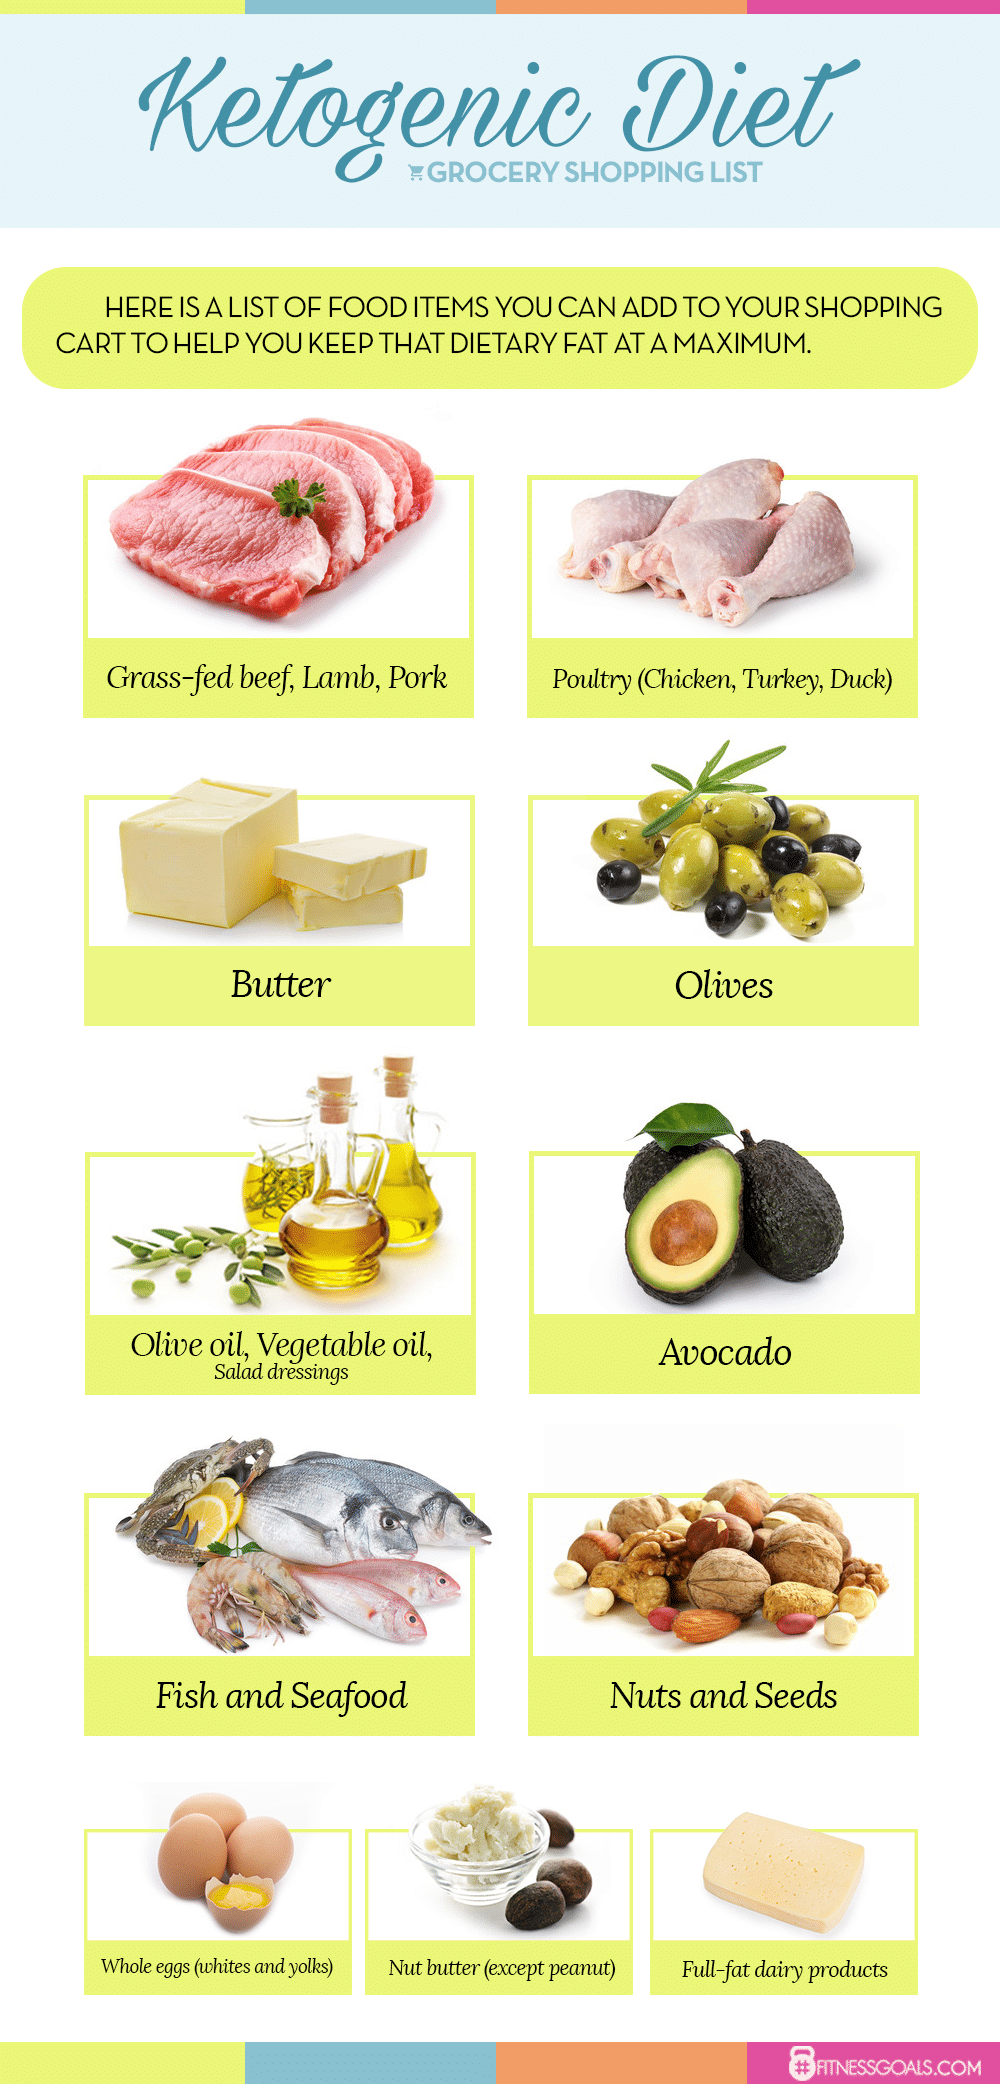 Ketogenic Food Choices You Can Add To Your Low Carb Shopping List So Prepare Delicious Meals Rich In Healthy Fats And Muscle Building Protein